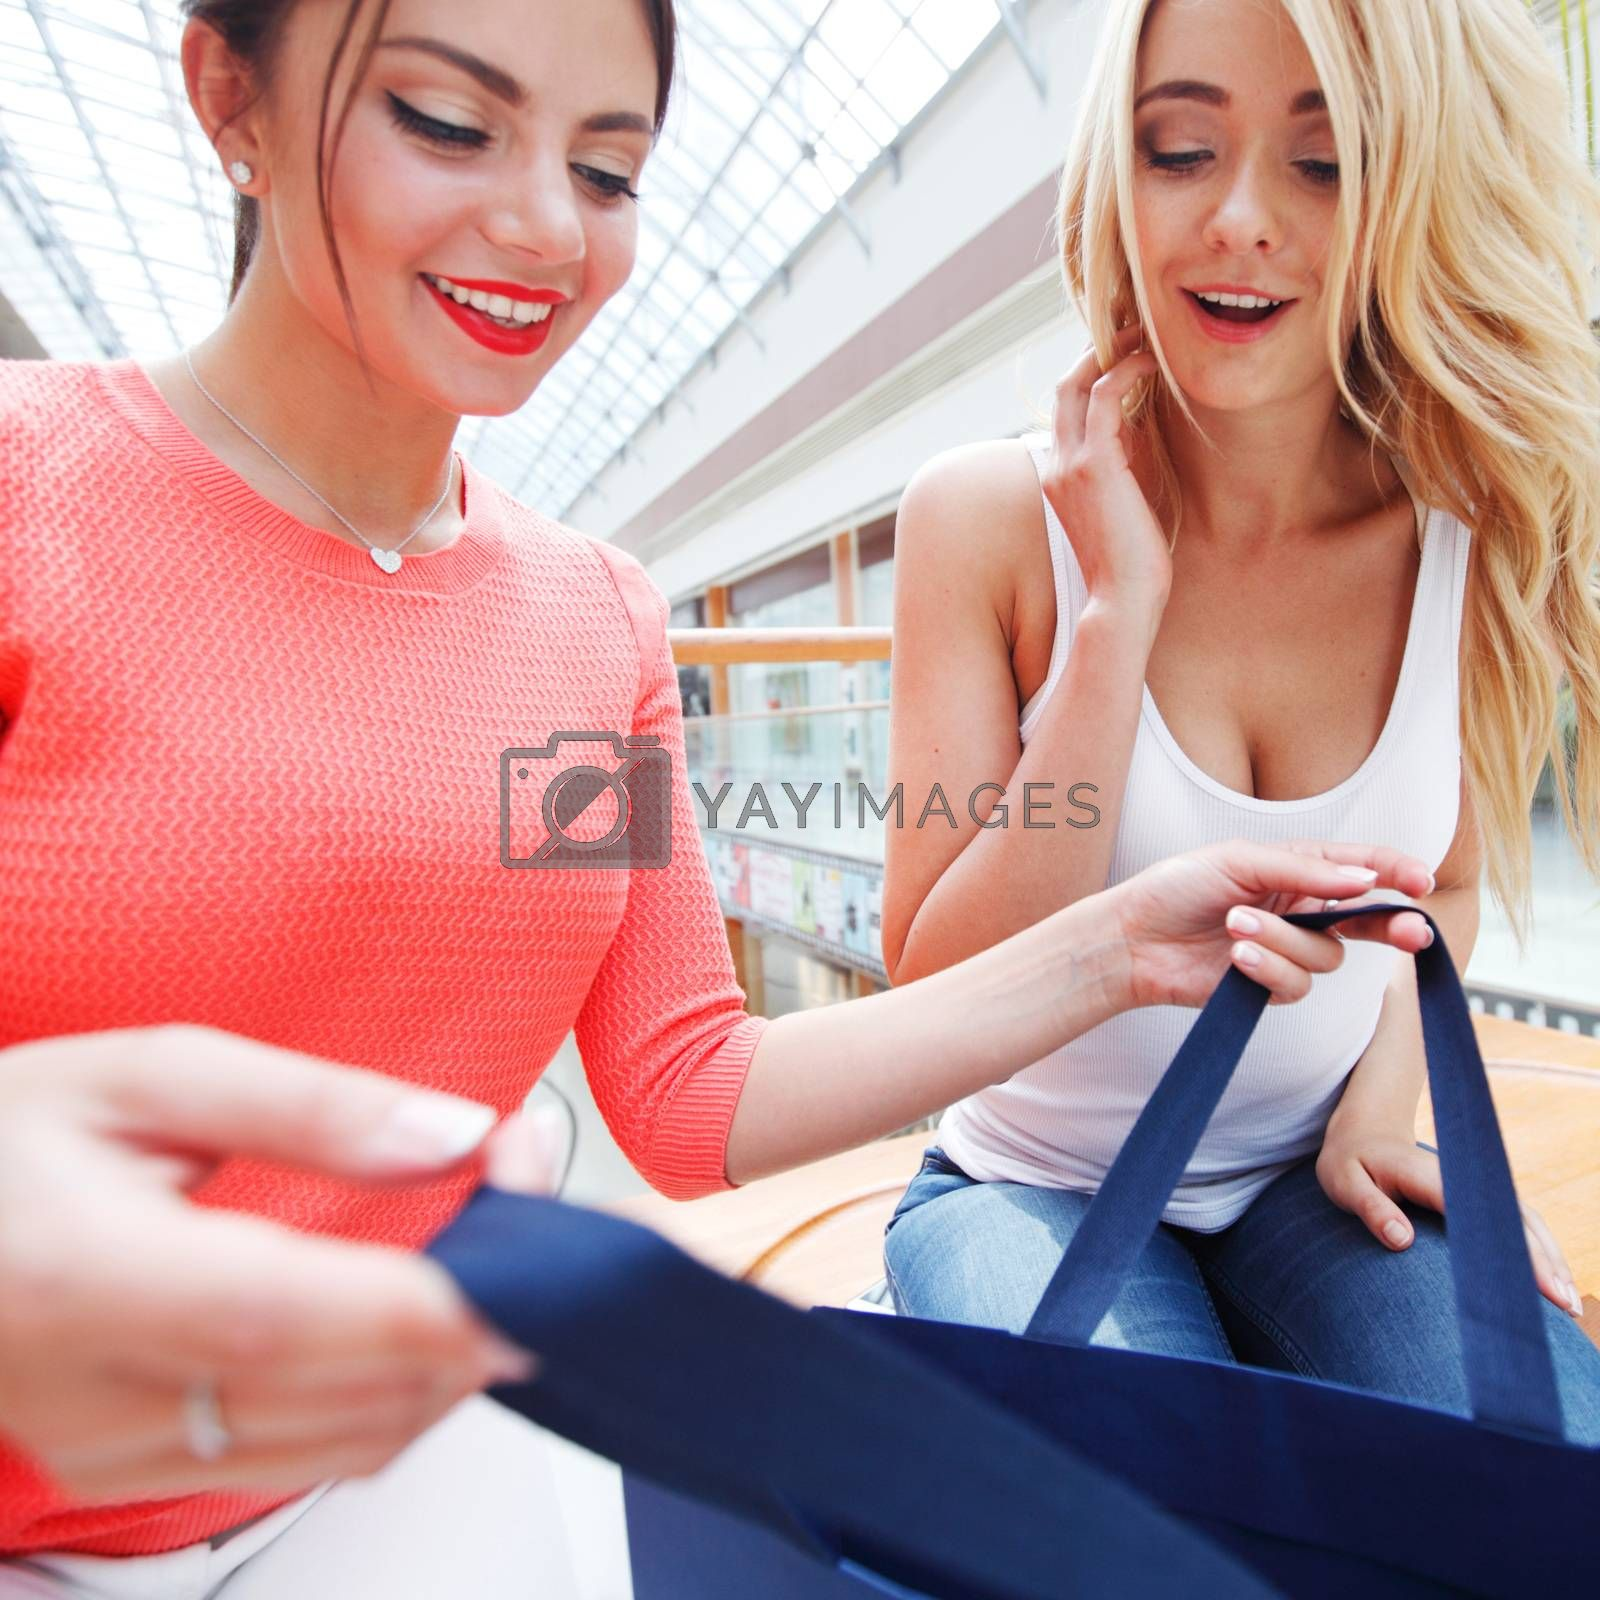 Women looking into shopping bag by ALotOfPeople